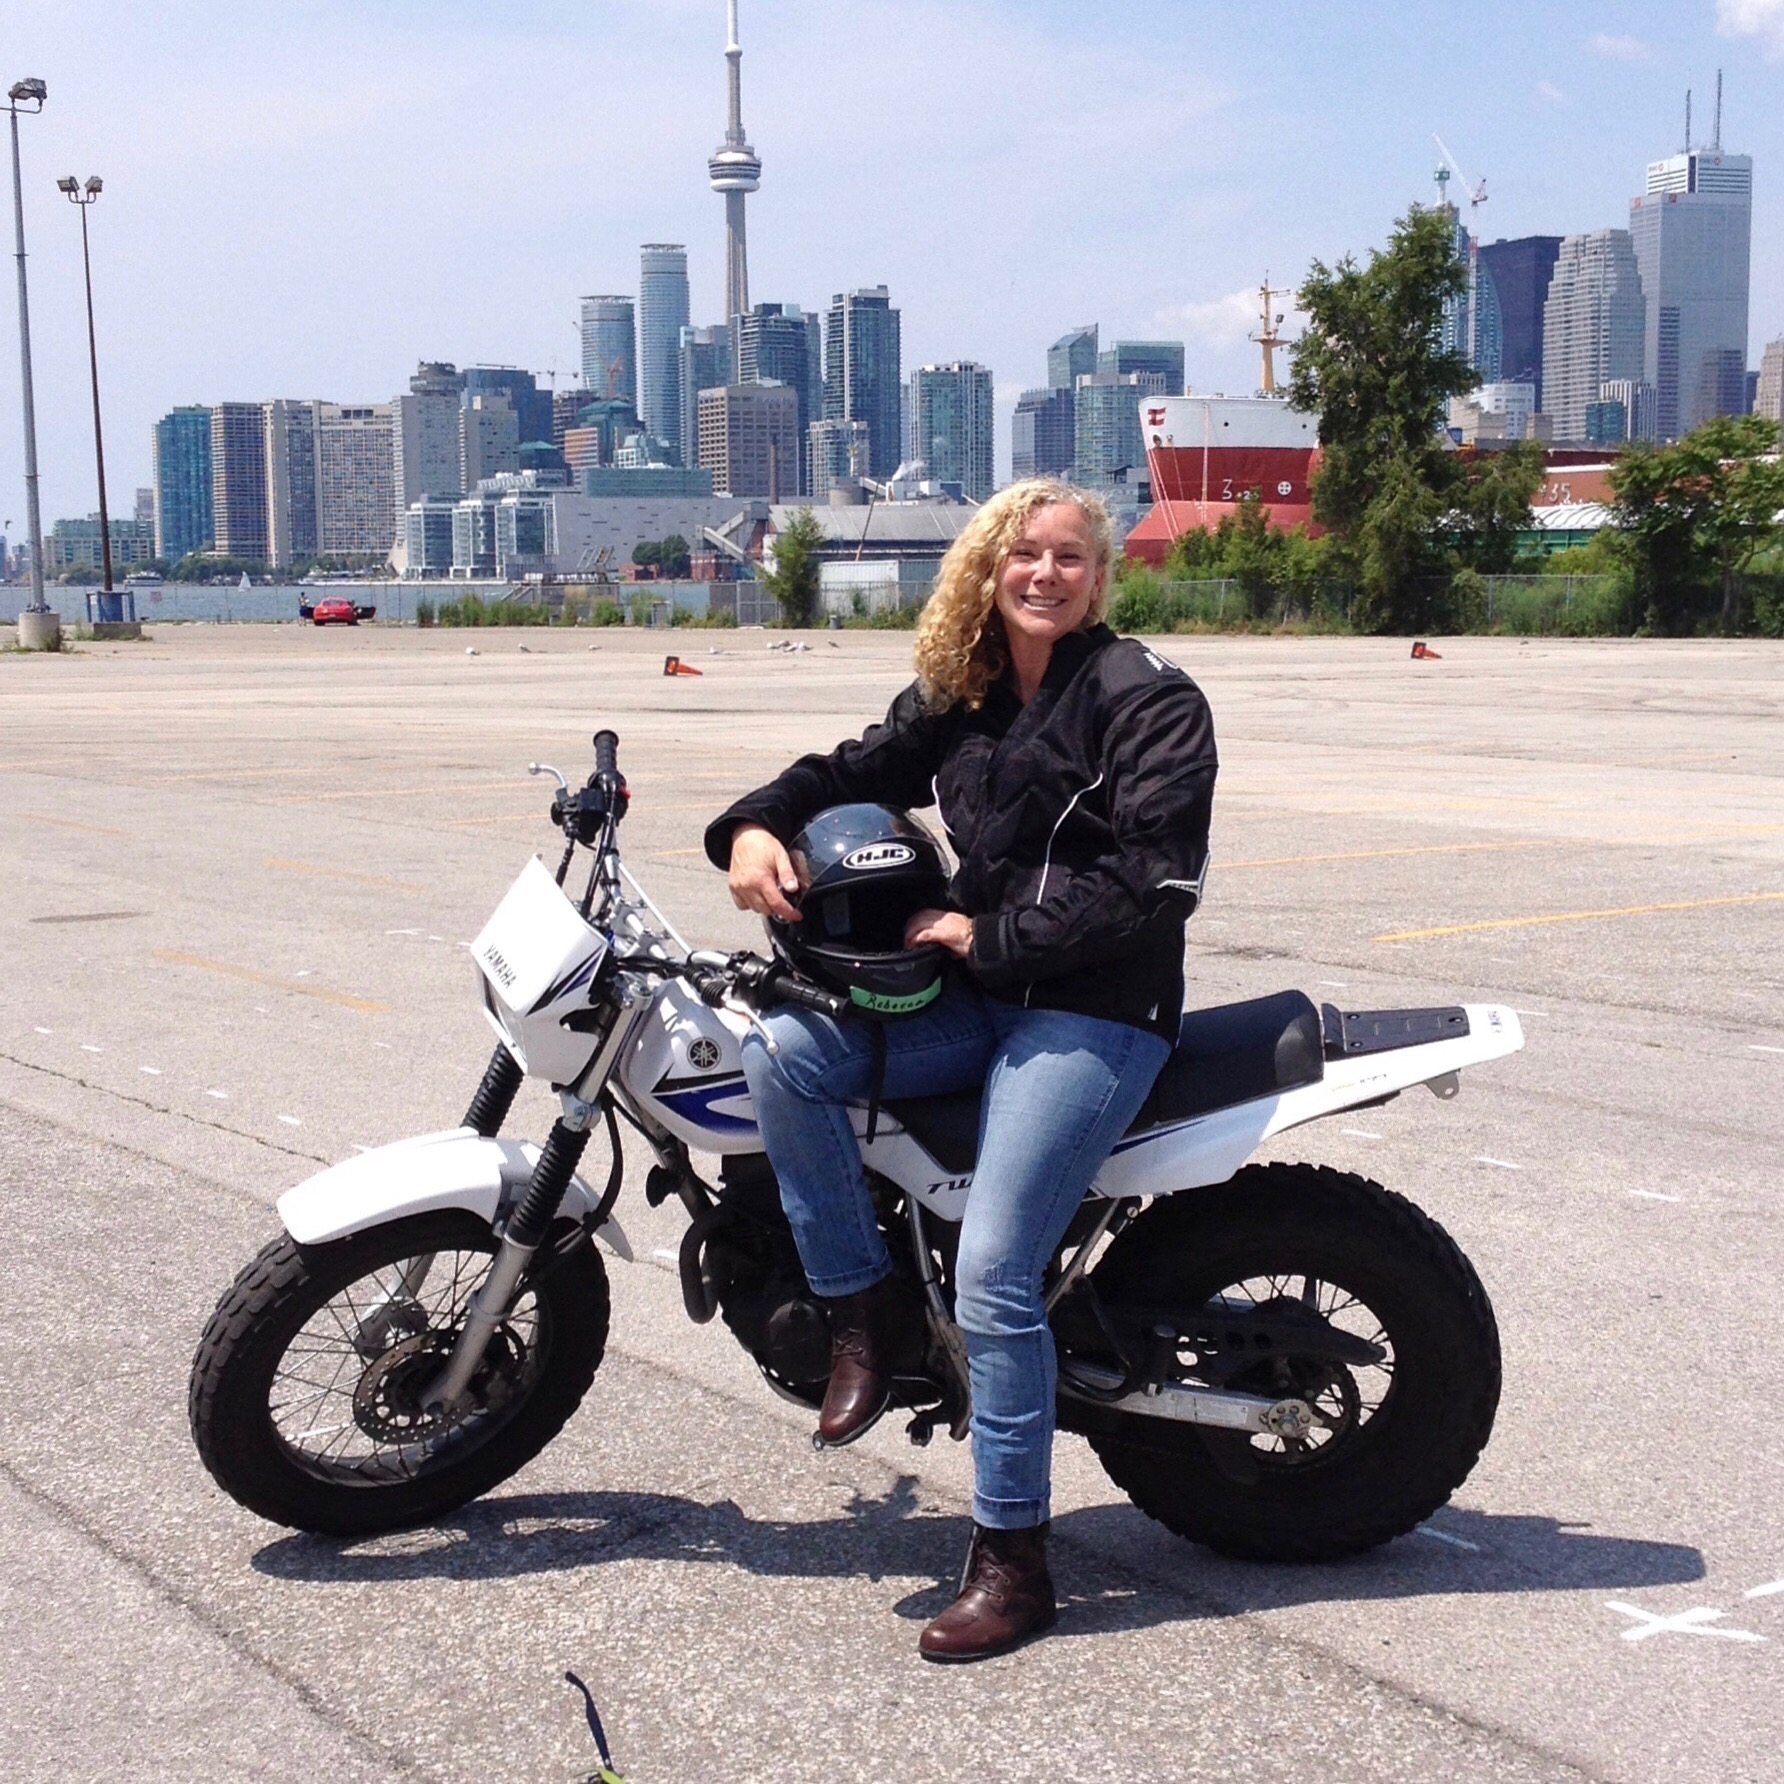 Big smile after passing Toronto's Rider Training Institute course and getting motorcycle license!